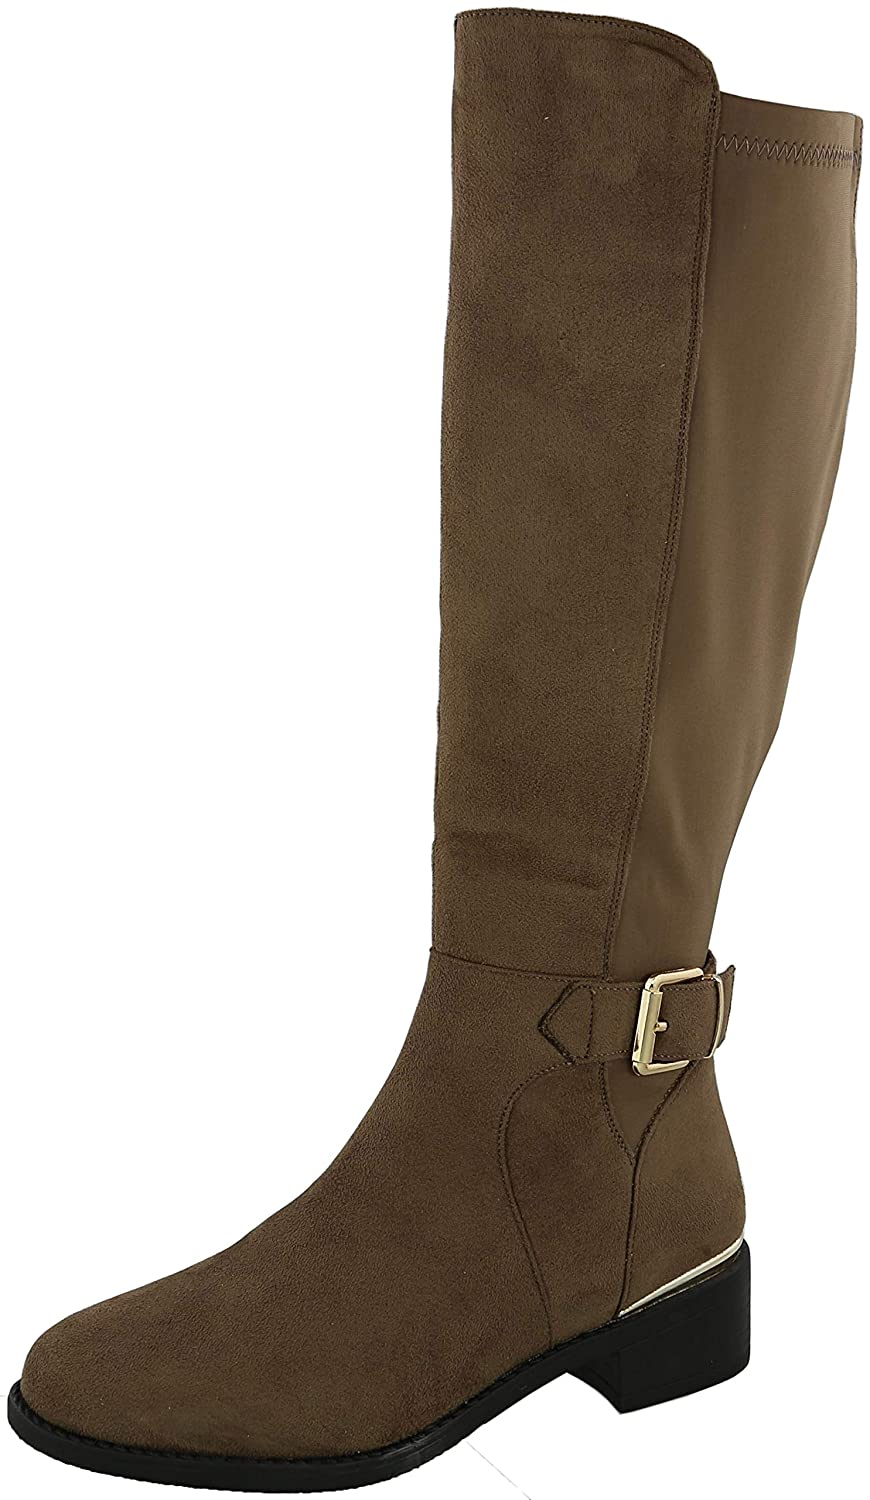 Taupe Imsu Cambridge Select Women's Round Toe Stretch Low Heel Knee-High Riding Boot